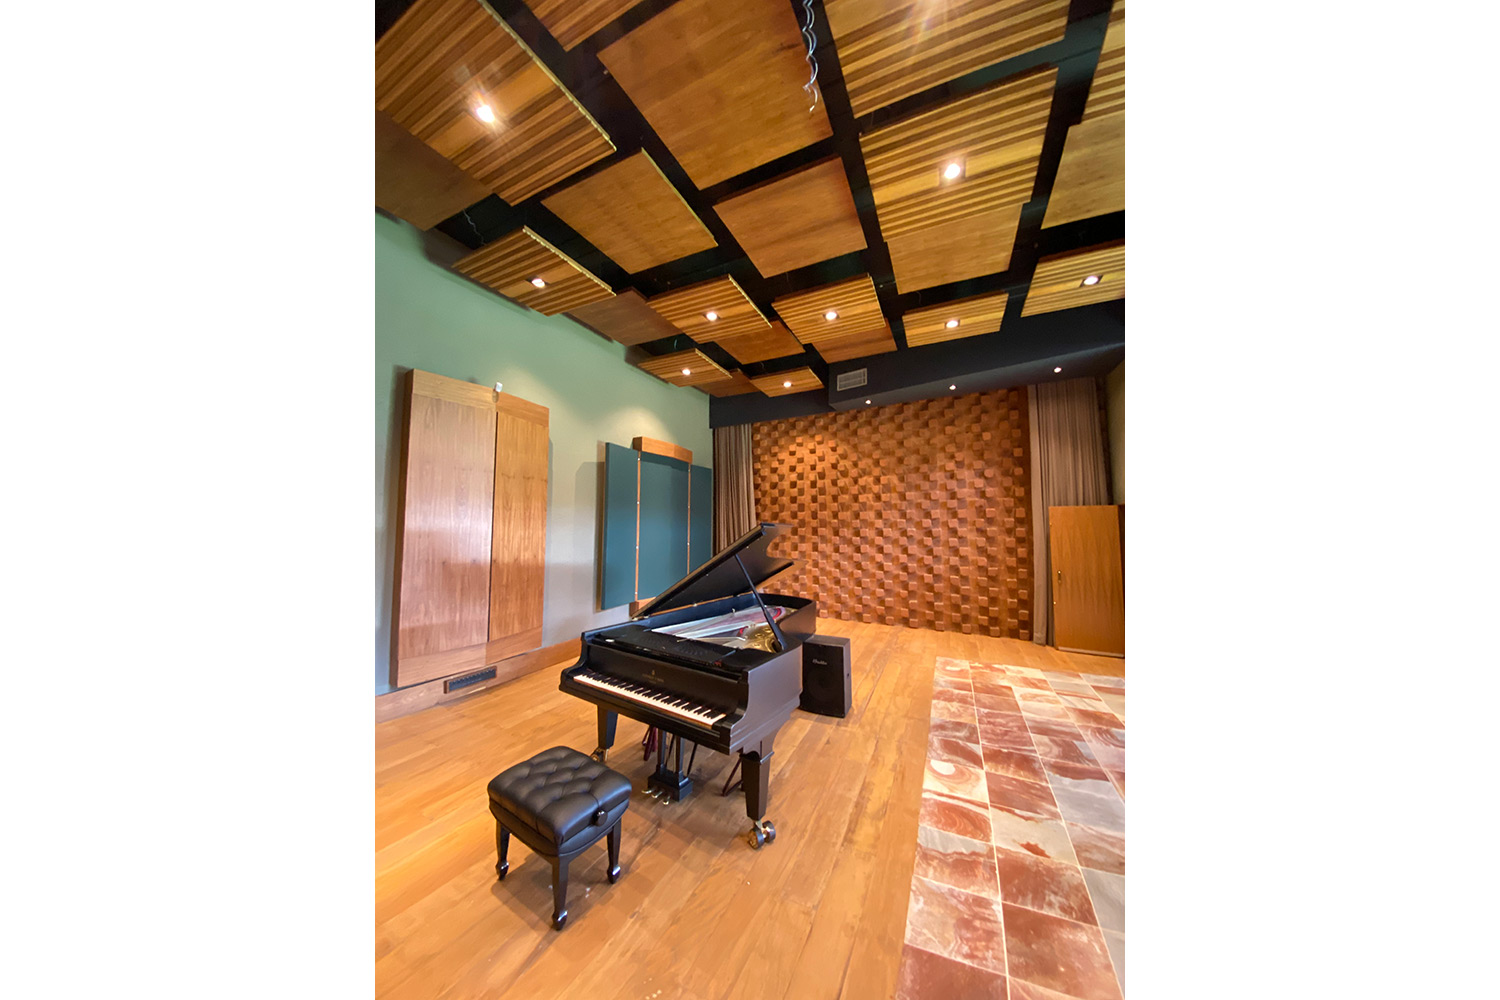 New Doors Vintage Keys, former Skank's studio now owned by Ale Fonseca. Studio designed by WSDG Brazil office. Live Room Piano and acoustic treatment.